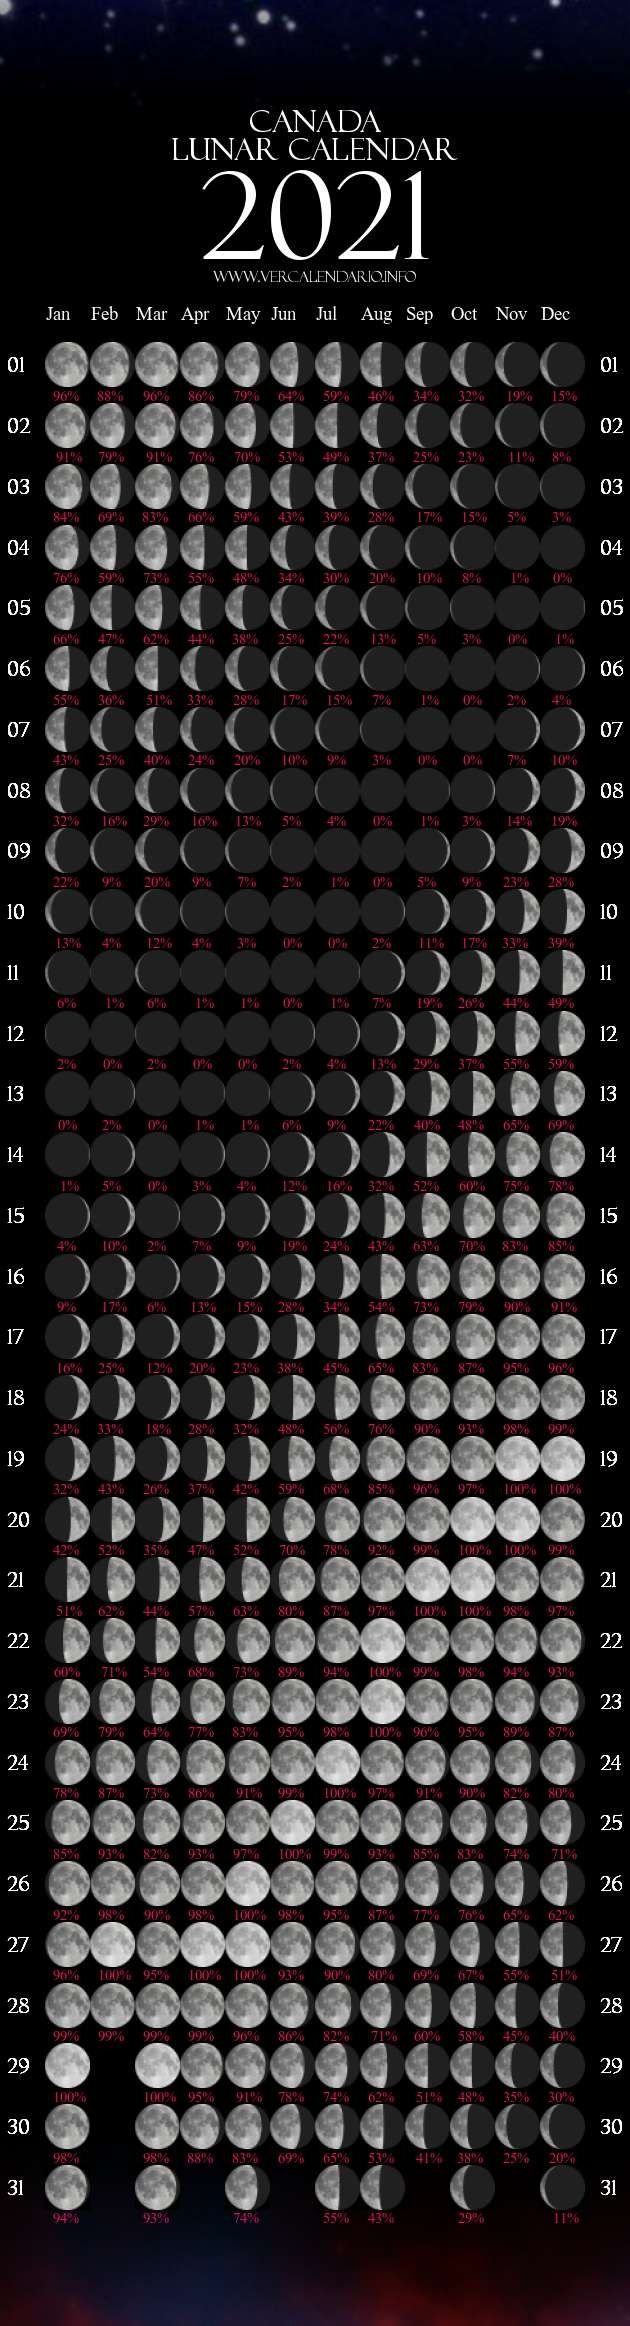 Take Moon Phase Calendar 2021 Printable